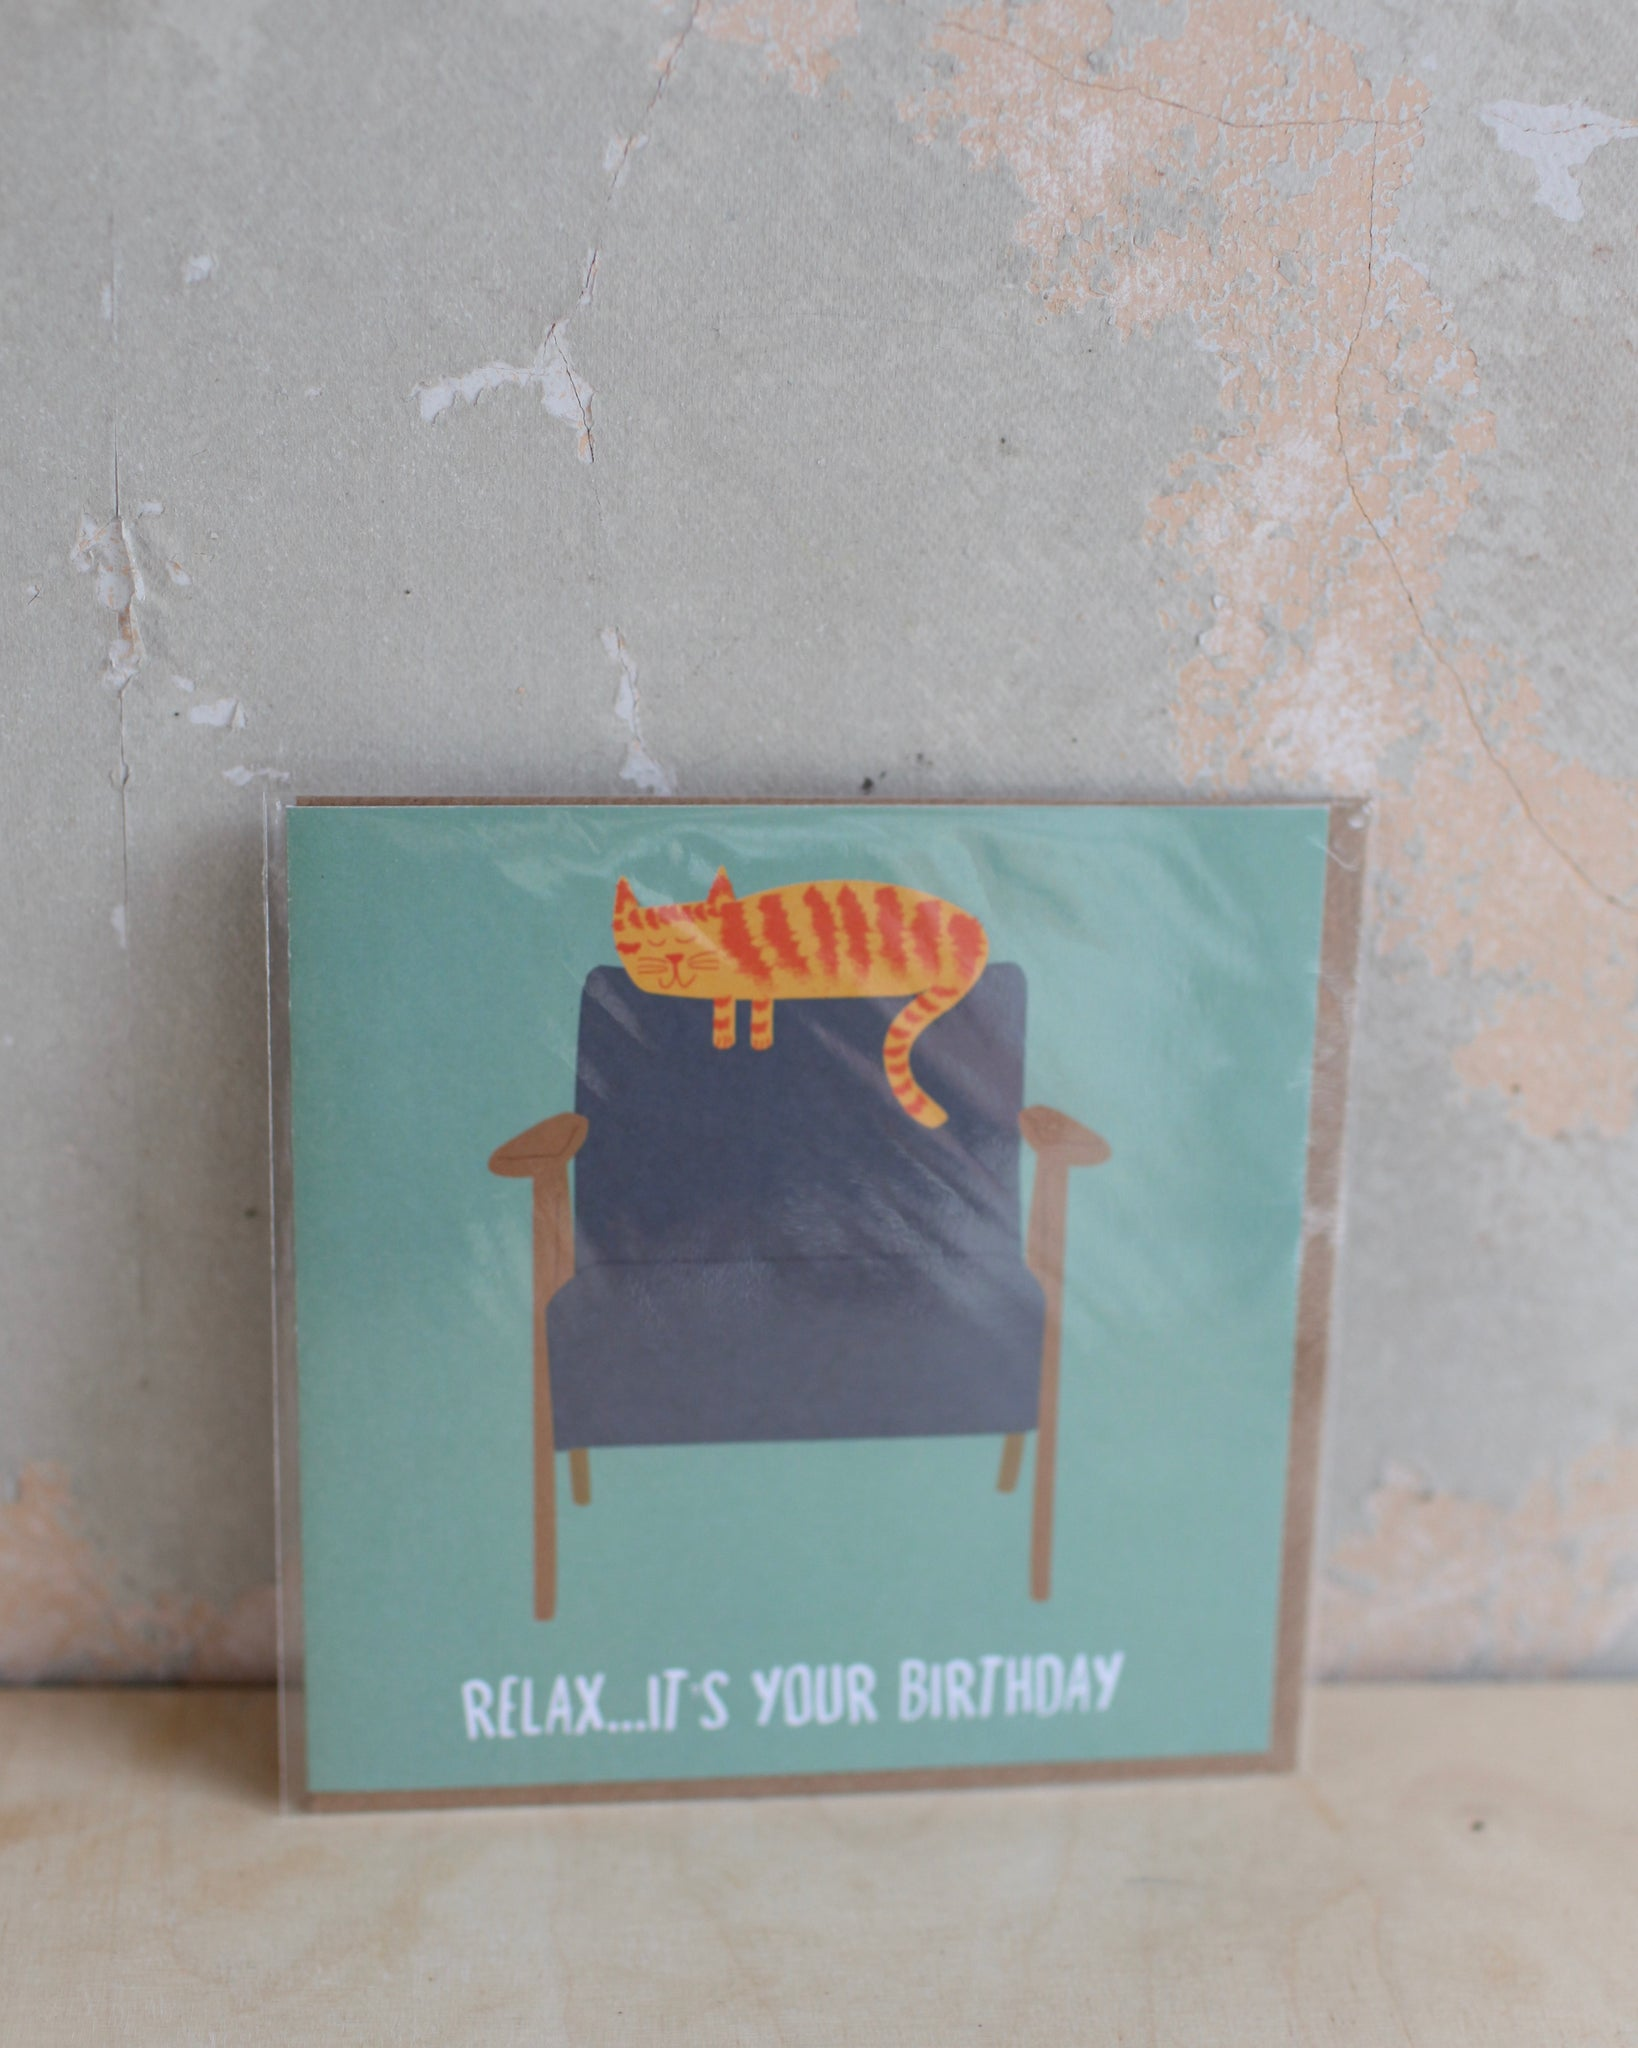 'Relax it's your Birthday' Greetings card